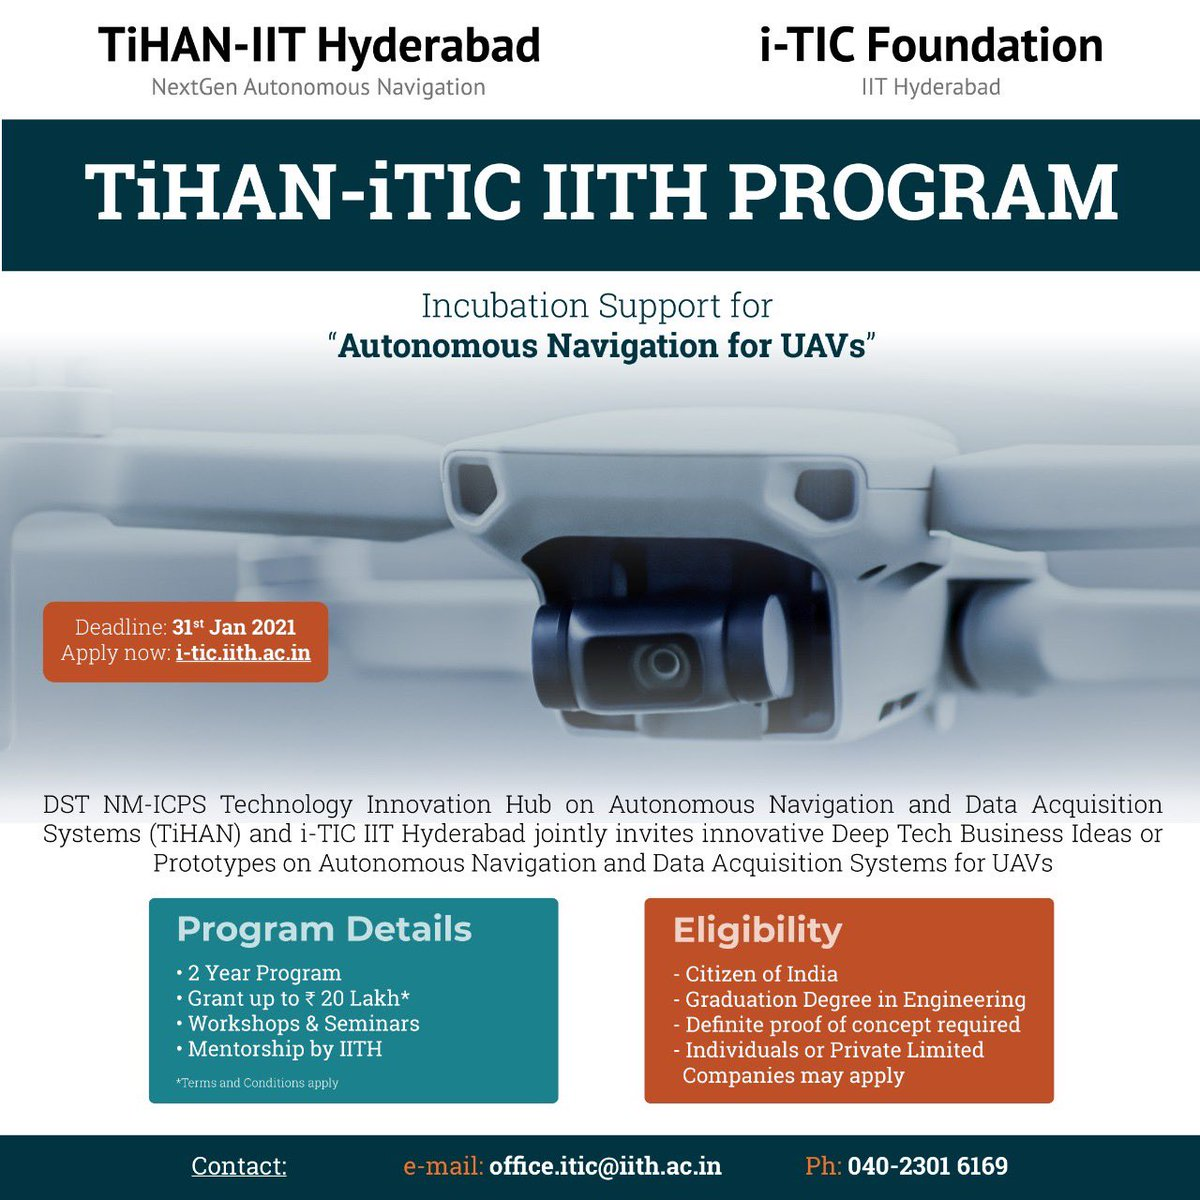 Funding: up to Rs. 20L Deadline: Jan 31st, 2021 TiHAN & i-TIC IITH jointly invites innovative Deep Tech Business Ideas or Prototypes on Autonomous Navigation & Data Acquisition Systems for UAVs   #DST #startup #funding  @IITHyderabad @IndiaDST Govt of India